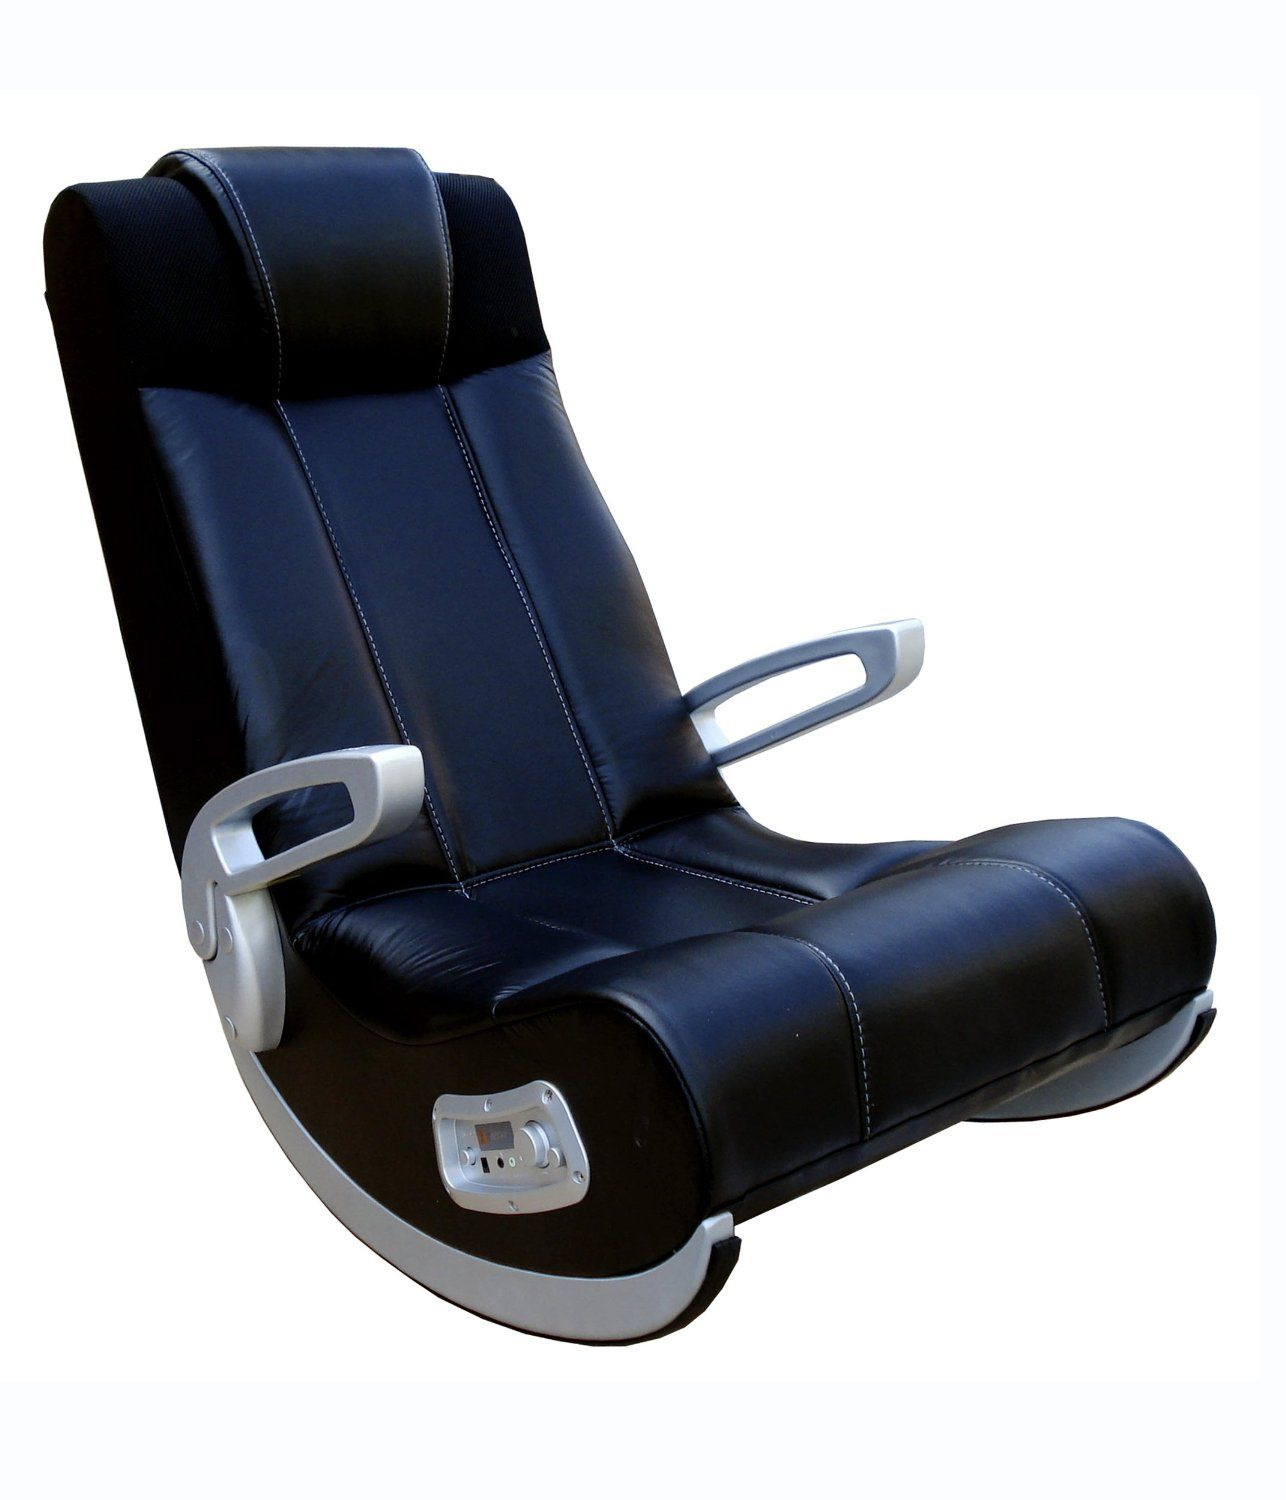 Gaming Chair with Speakers and Vibration Gaming chair